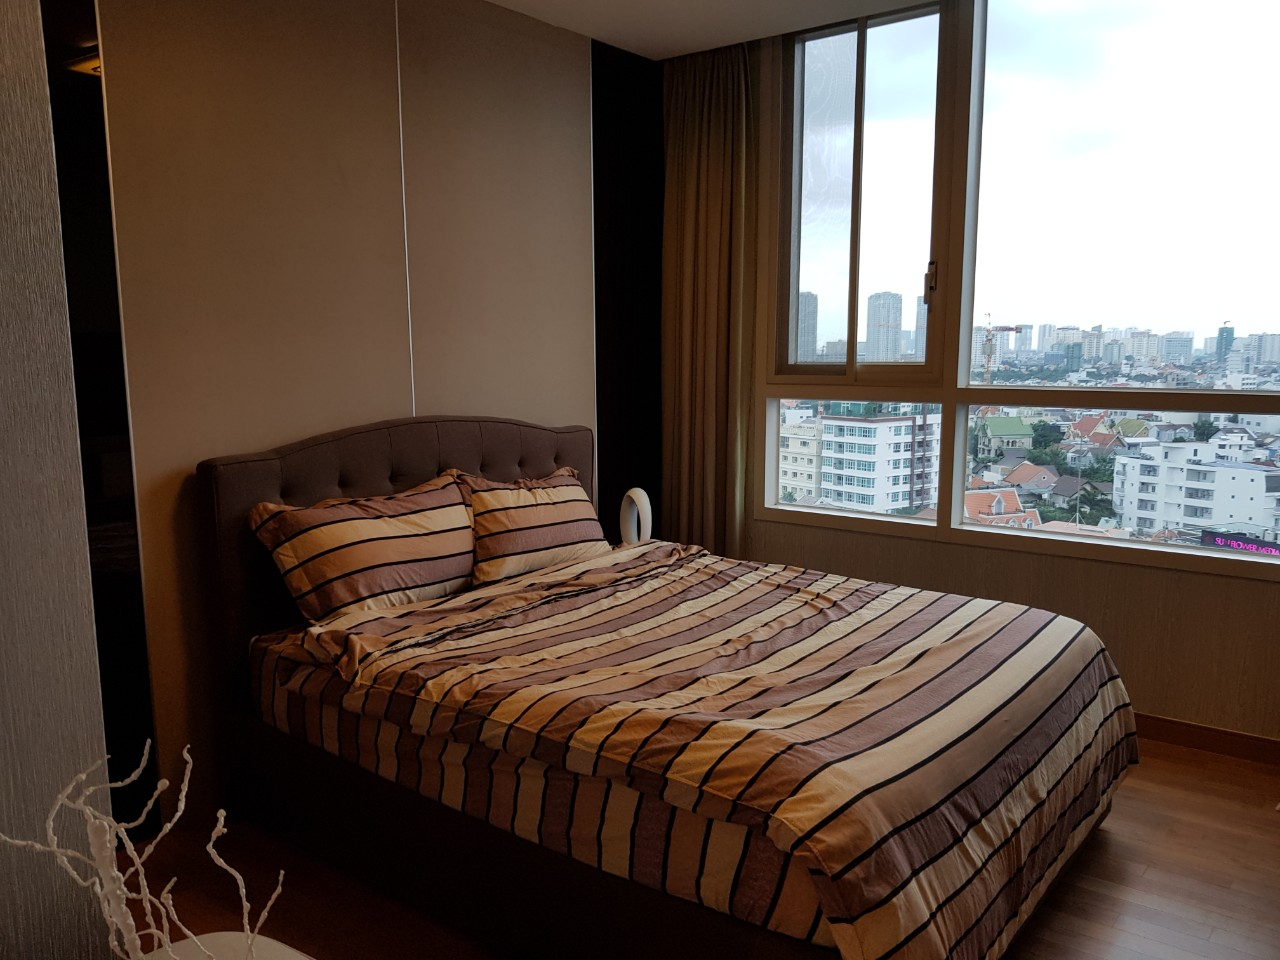 Xi Apartment Nice Furniture Good View in Thao Dien D206096 (2)